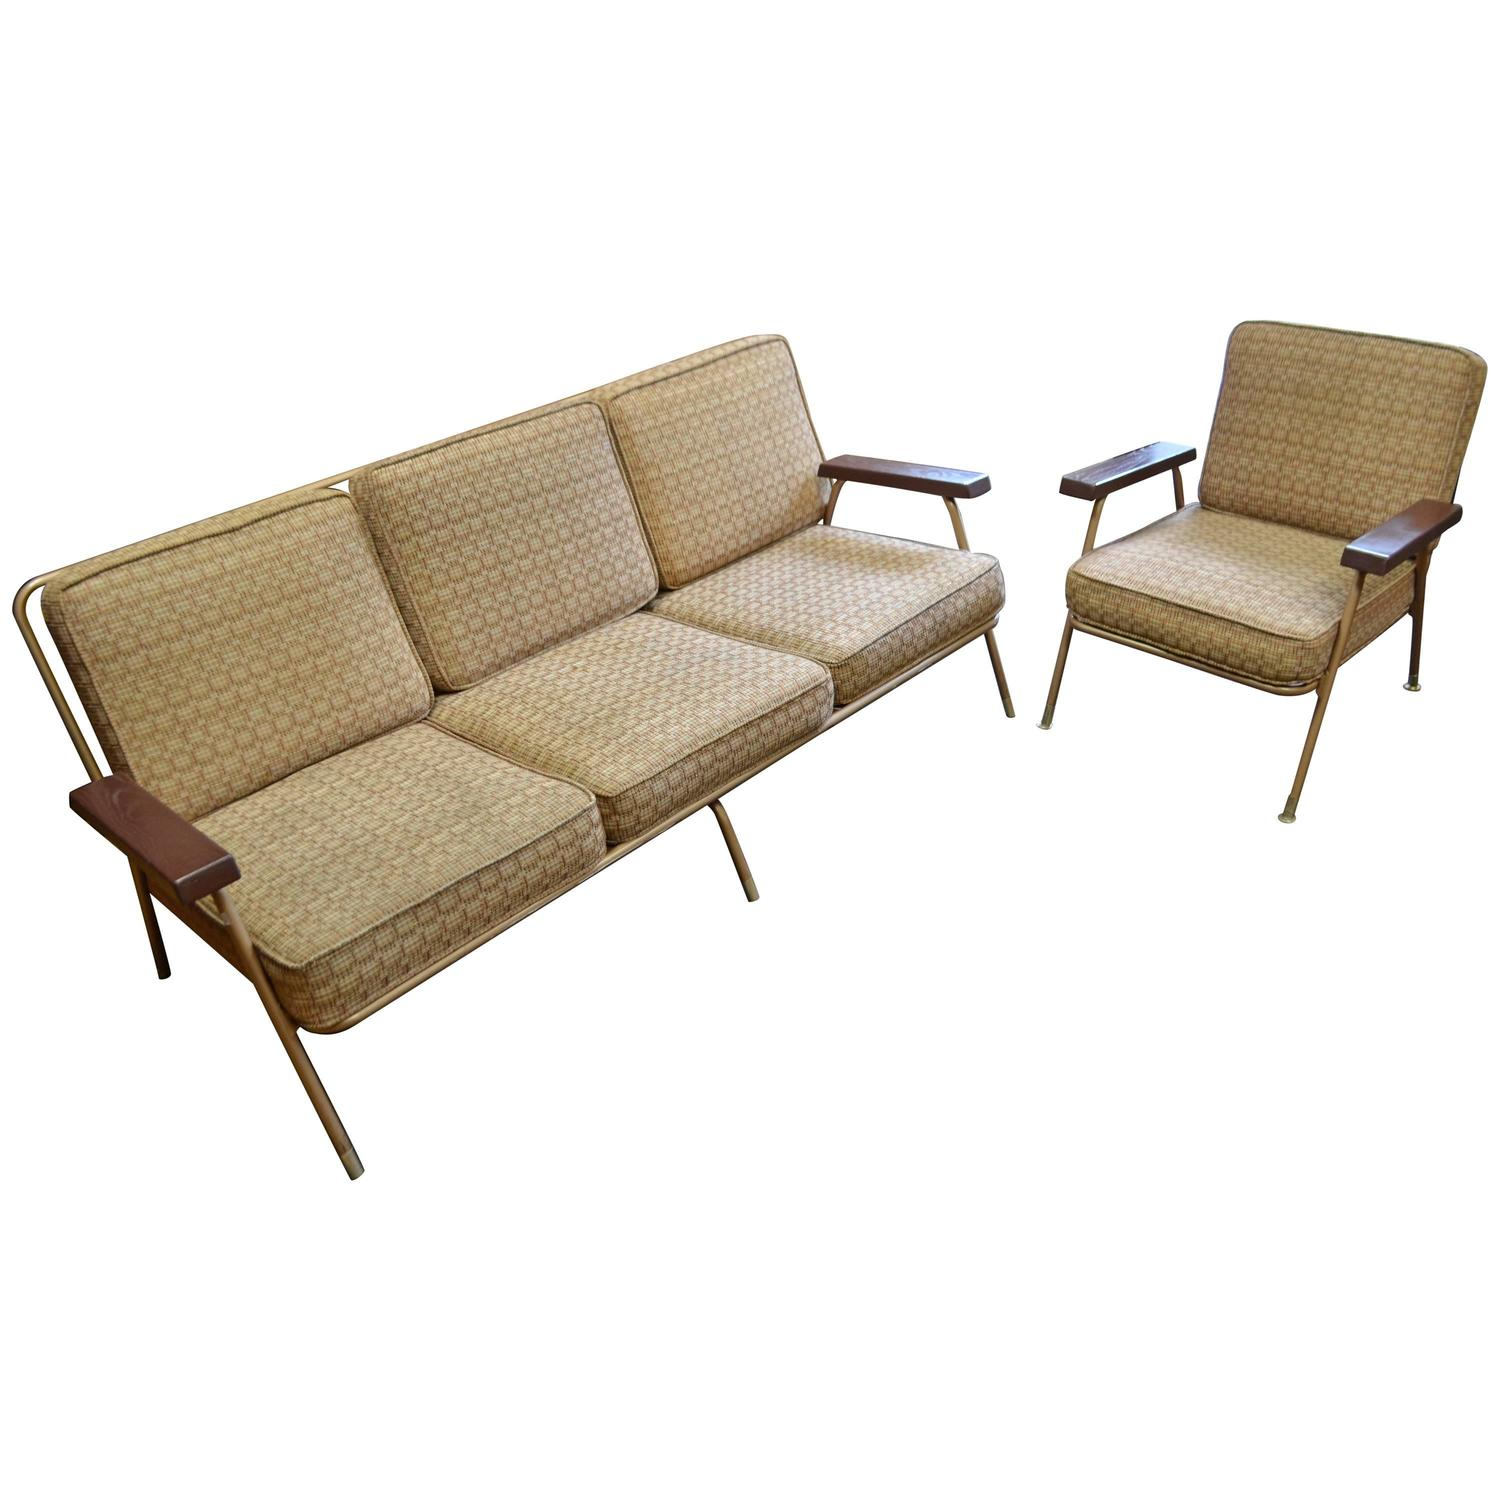 Midcentury sofa with matching lounge chair at 1stdibs for Matching lounge furniture